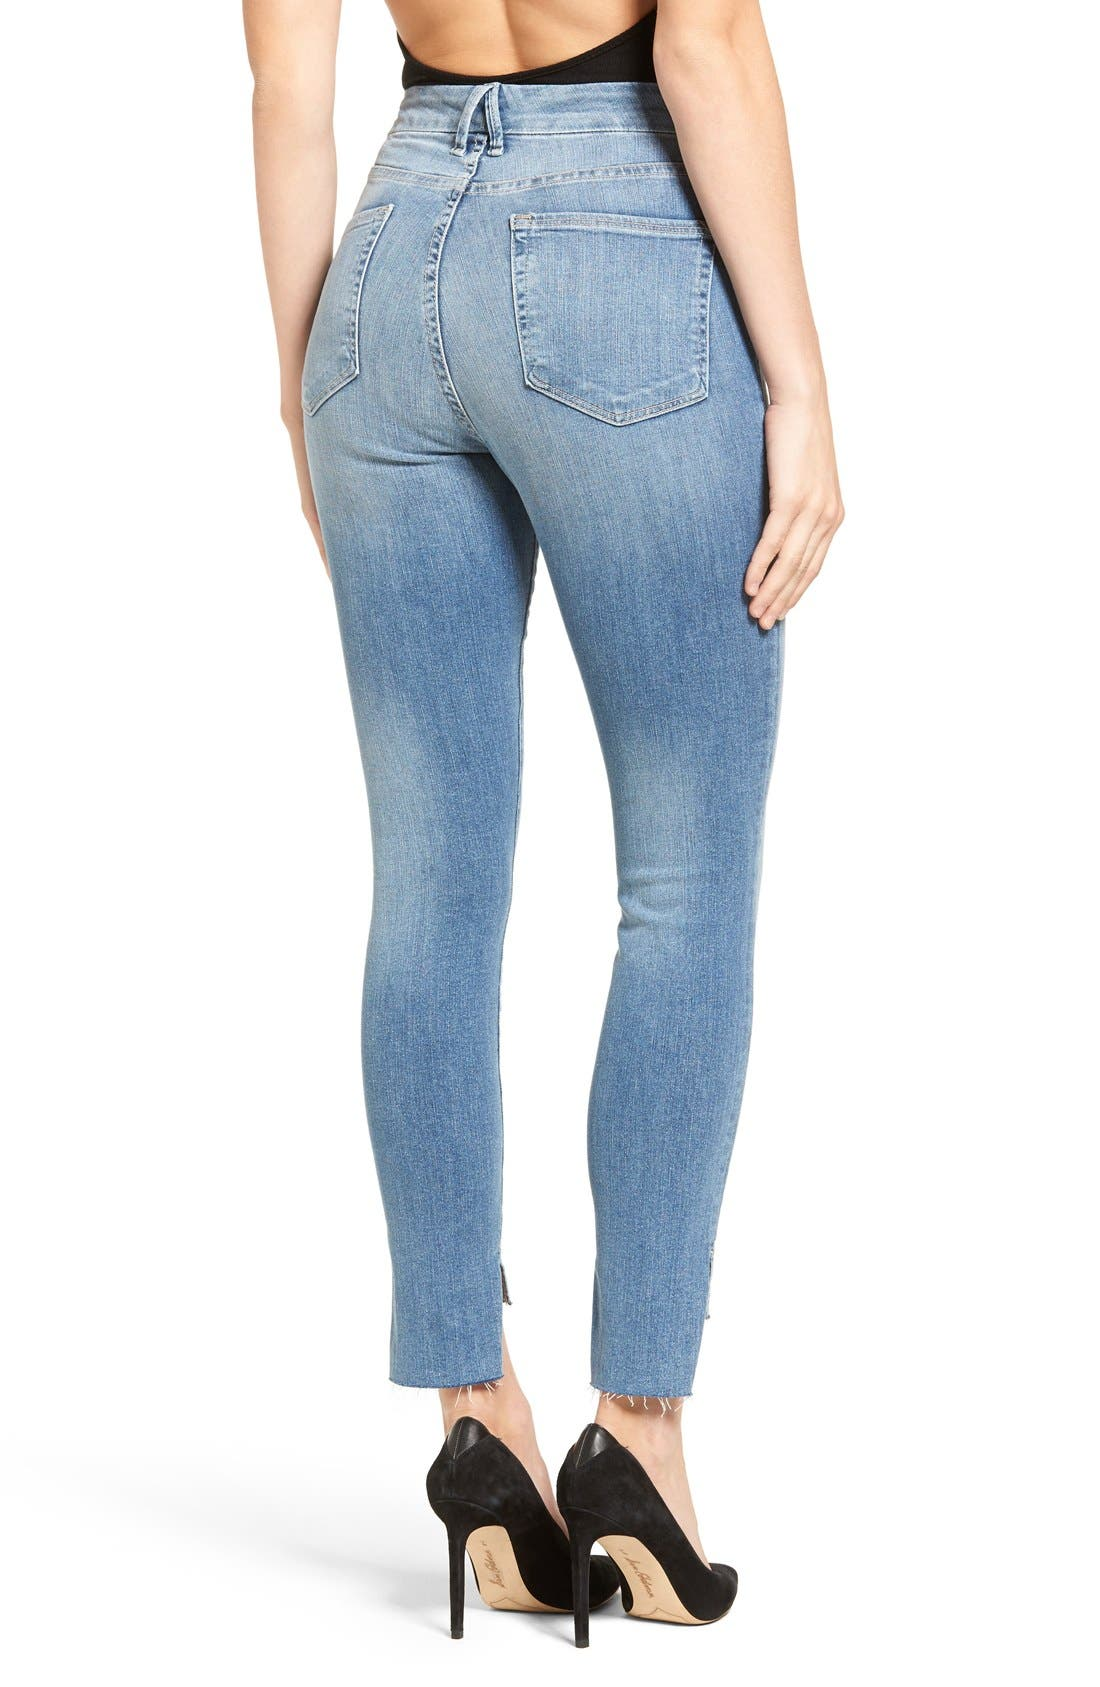 Alternate Image 3  - Good American Good Legs High Waist Skinny Jeans (Blue 007) (Extended Sizes)